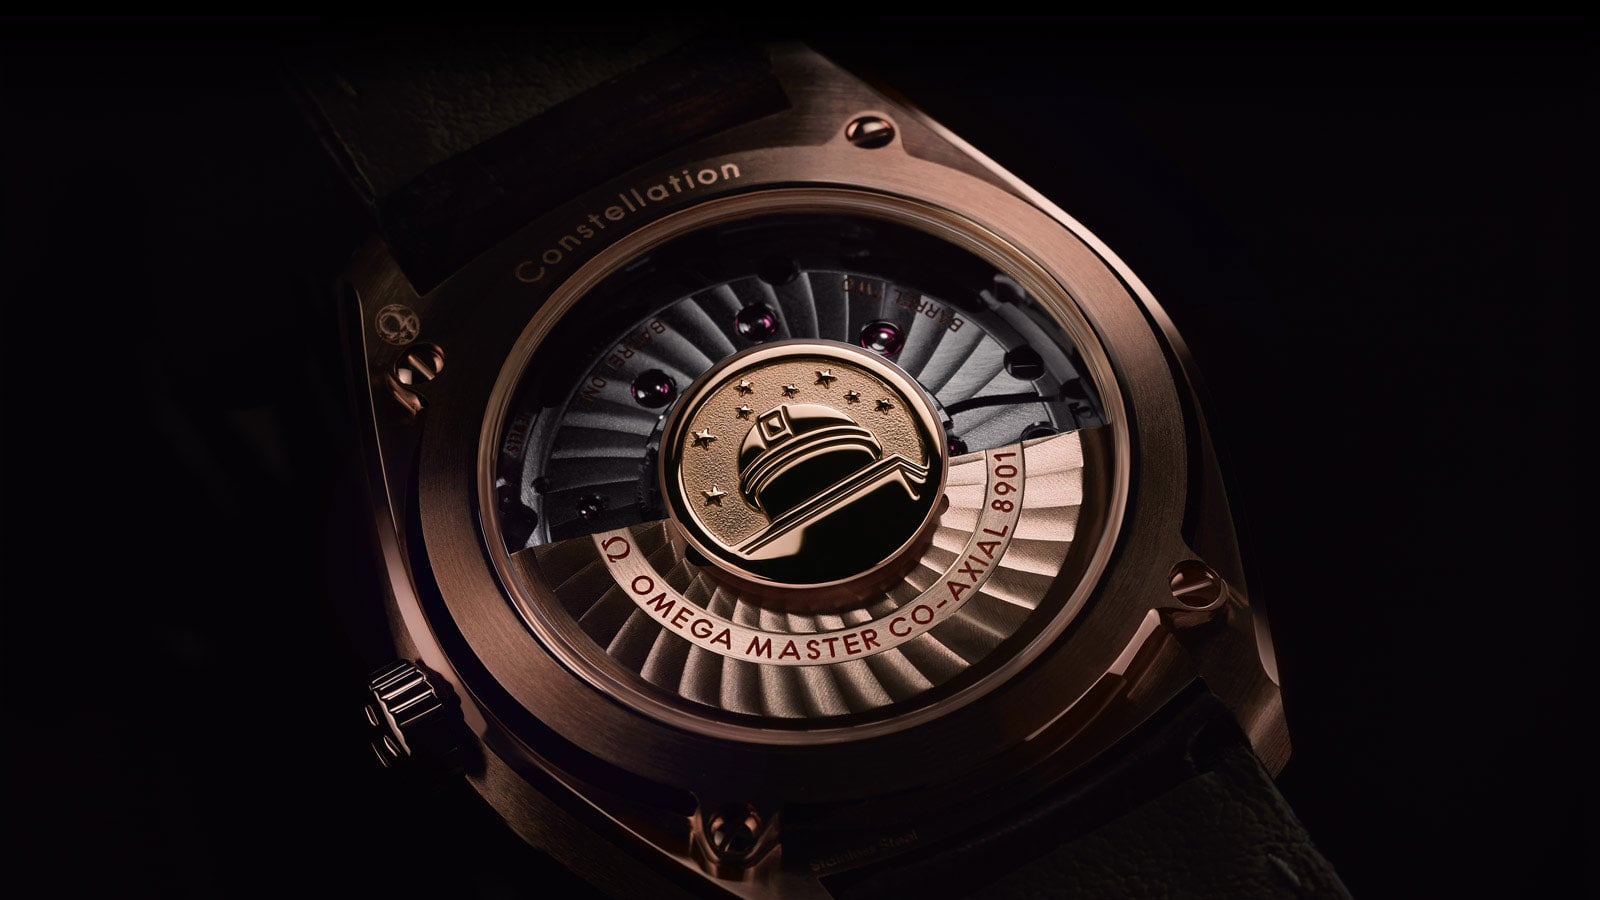 The transparent caseback of the Globemaster watches lets you see the automatic movement inside